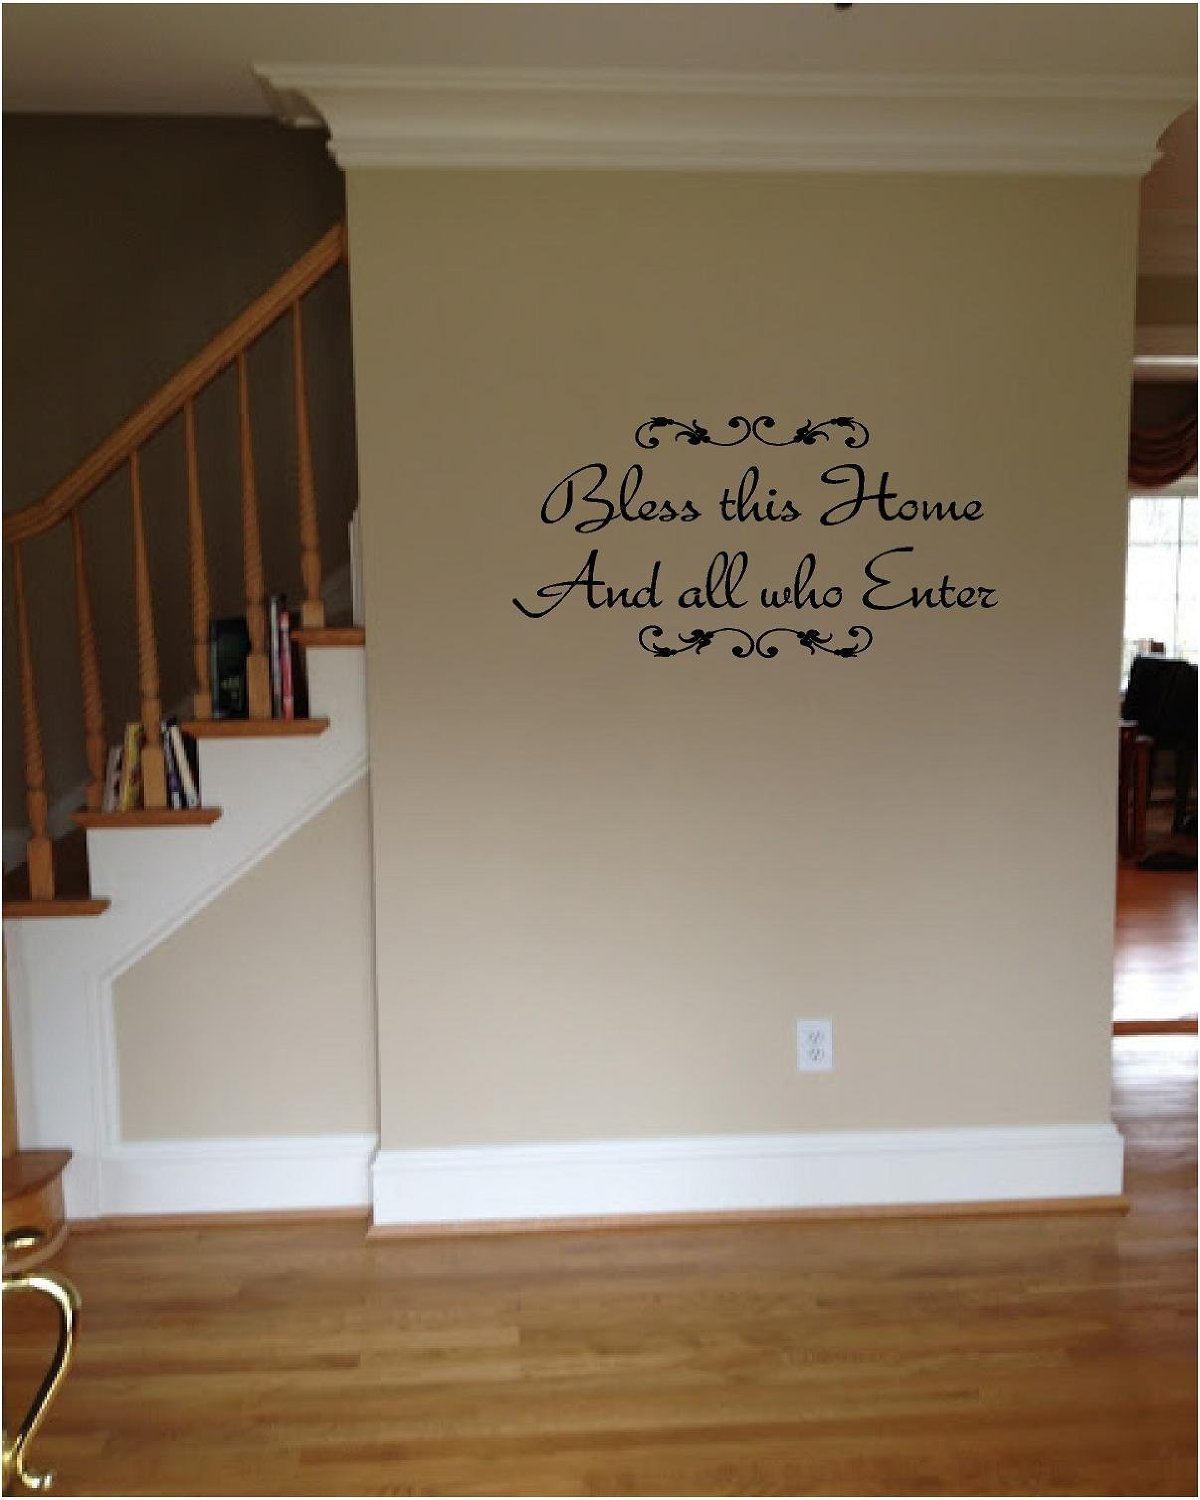 SWORNA English Proverb Series Bless This Home And All Who Enter Fancy Vinyl  Wall Quotes Welcome Bless Religious Sayings Wall Saying Vinyl Decal ...